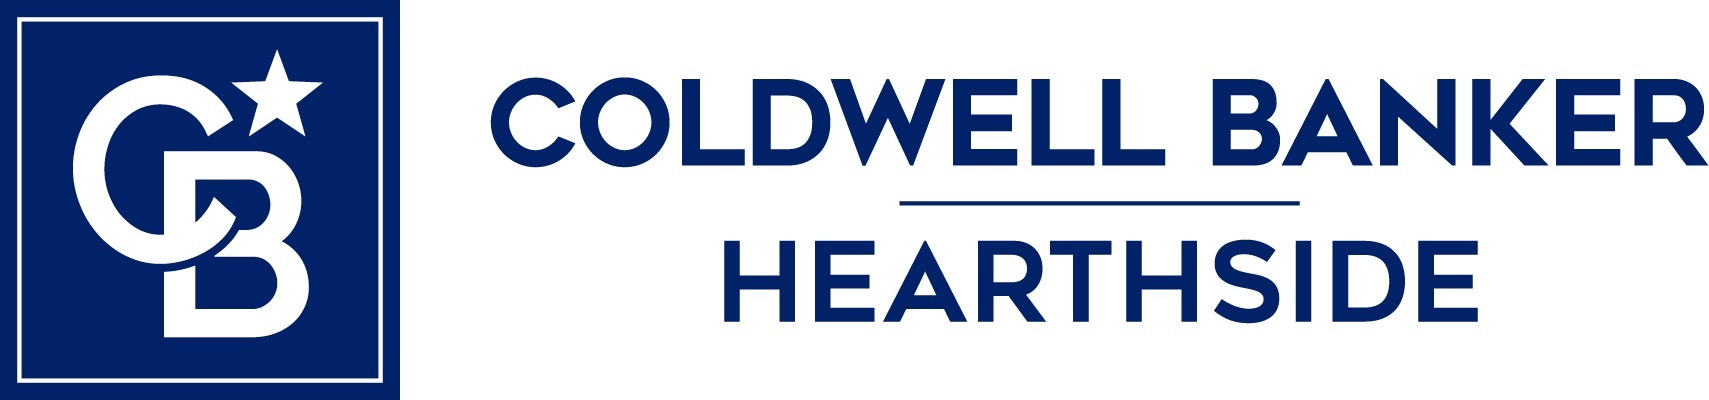 Stephanie Gregory - Coldwell Banker Hearthside Logo